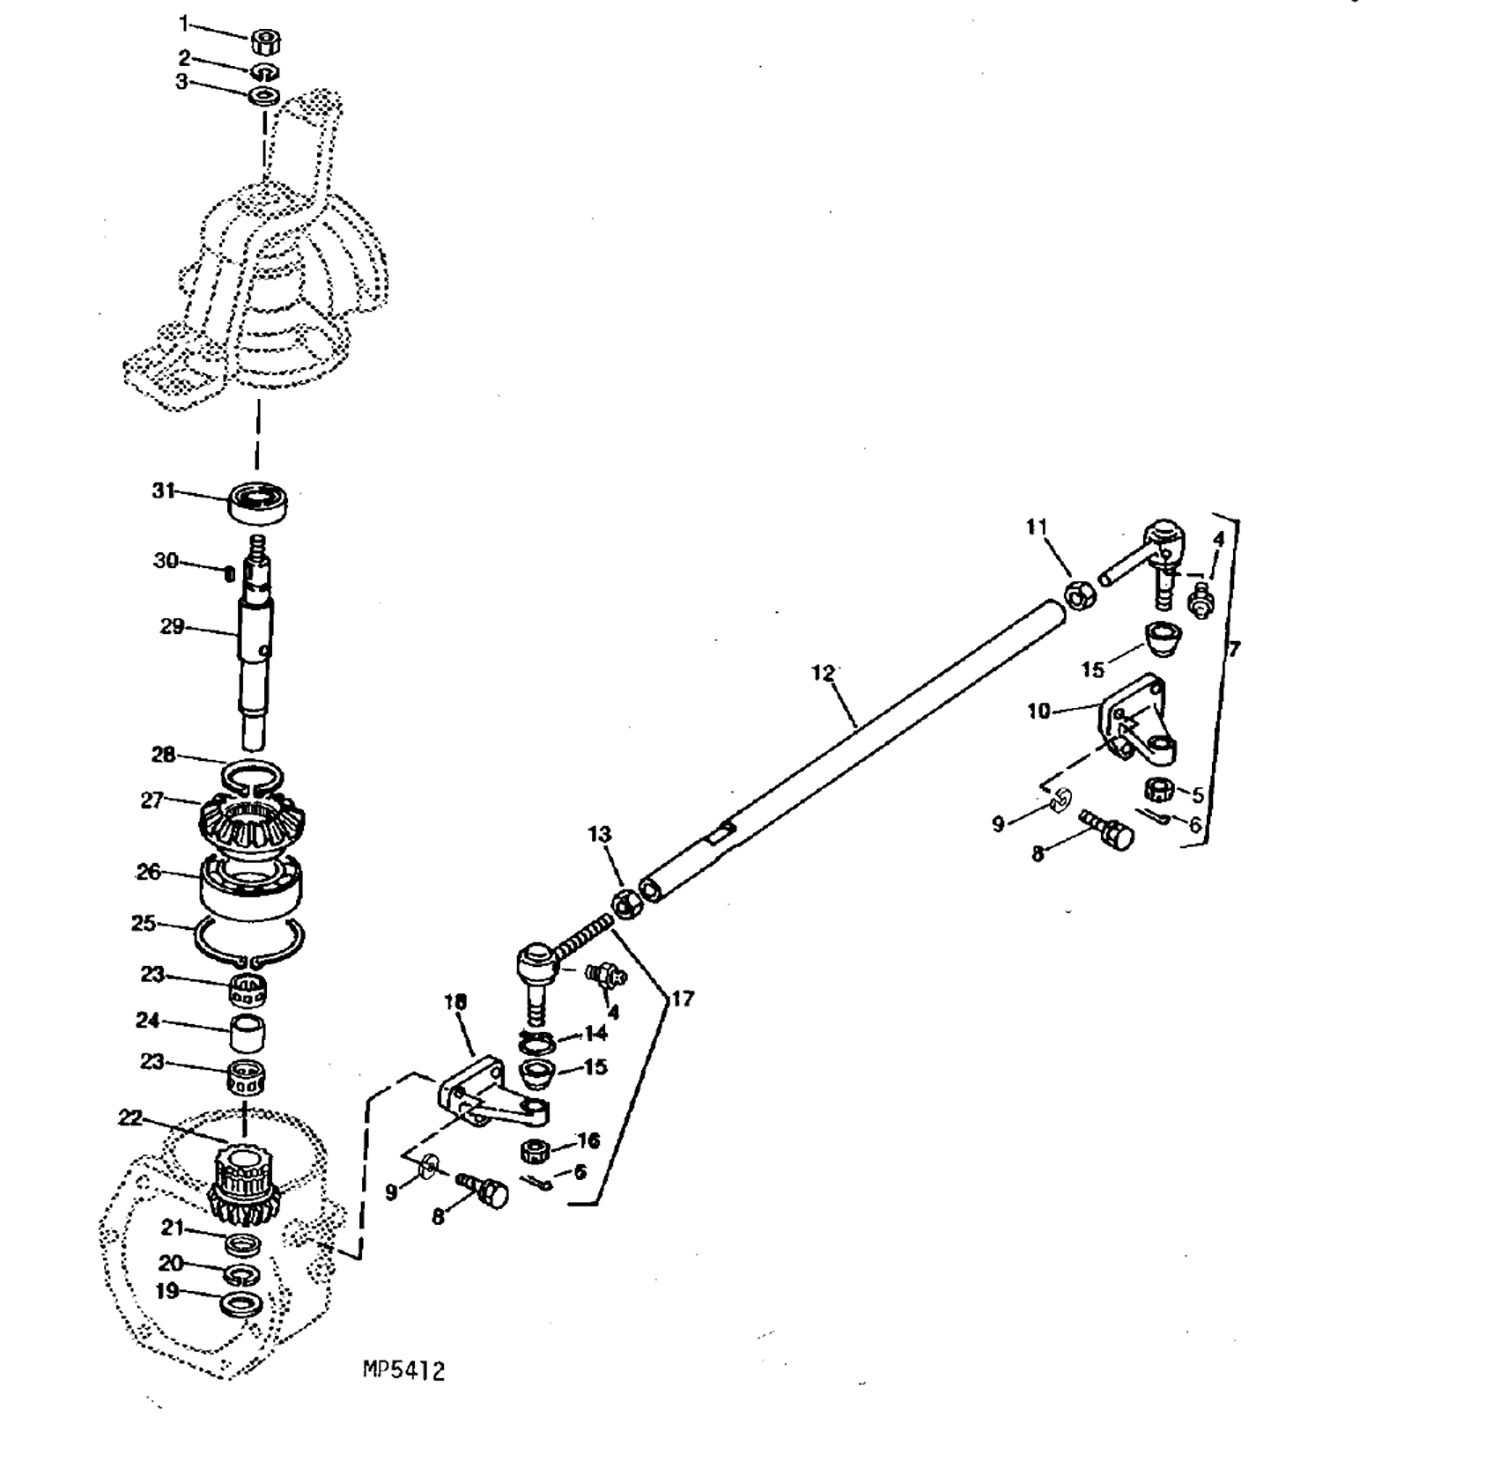 850 axle gears_2 buy your compact tractor parts online \u2022 weaver's compact tractor parts John Deere 855 Parts Diagram at soozxer.org